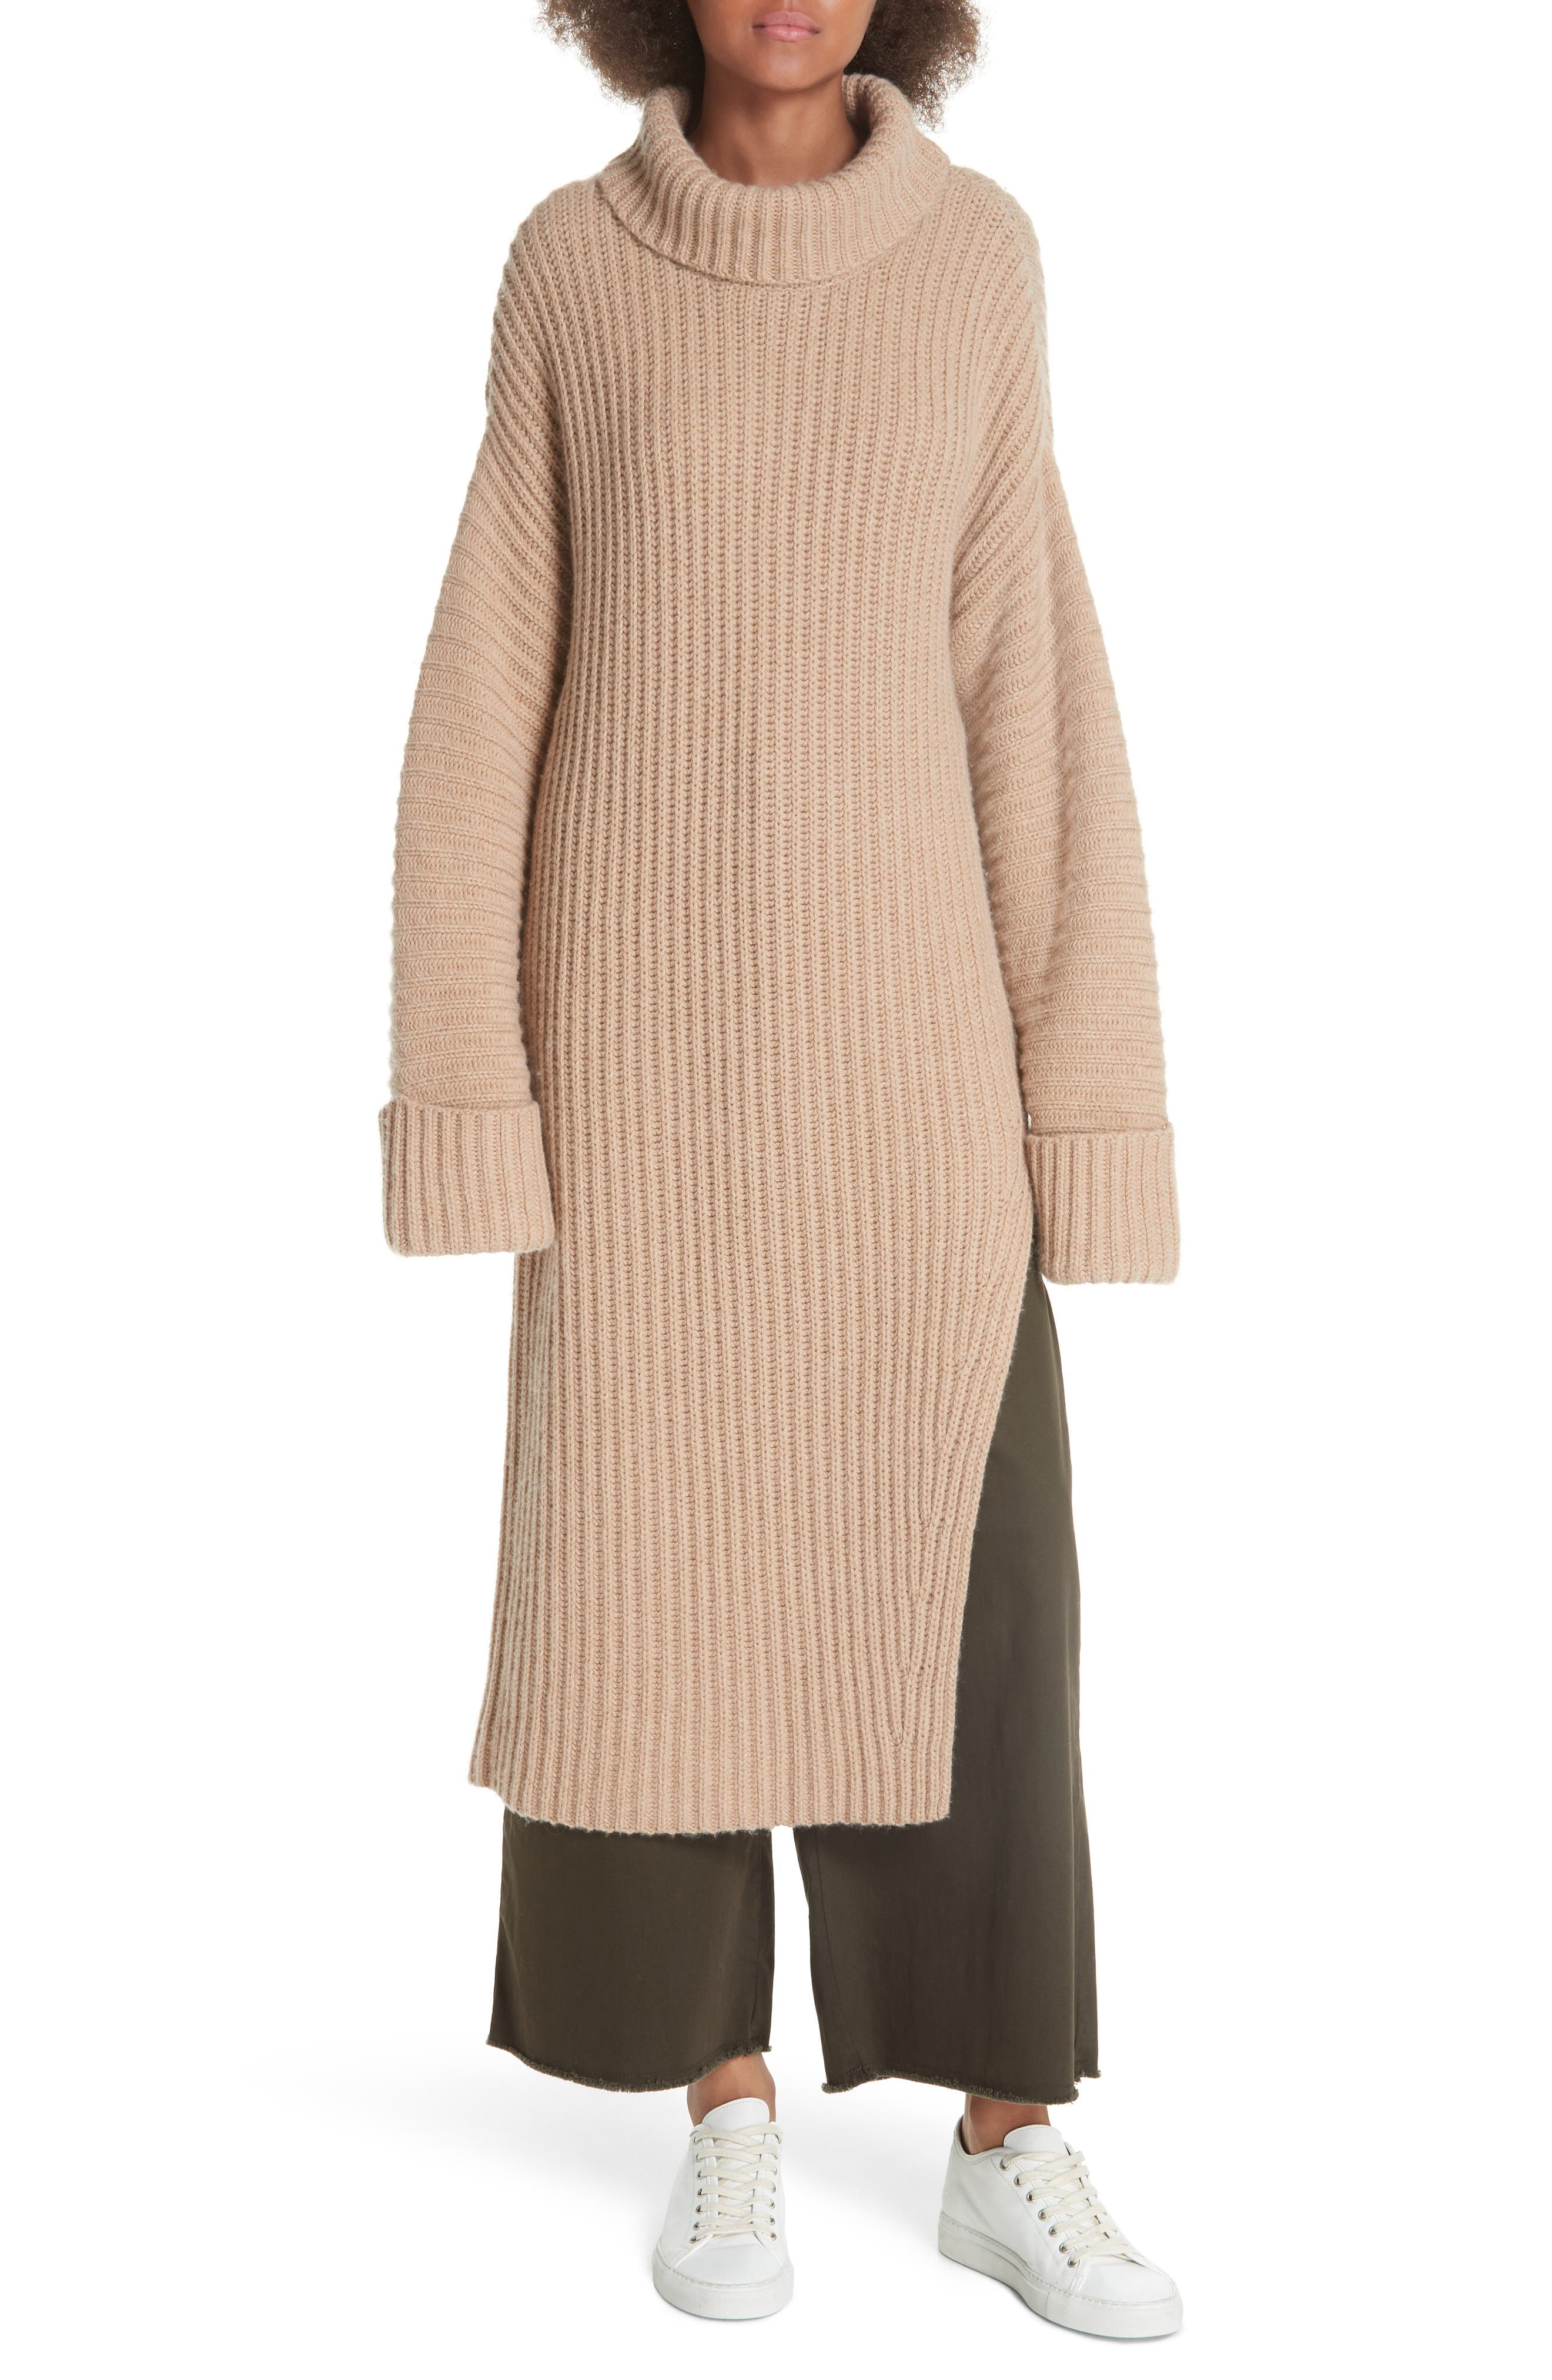 ELIZABETH AND JAMES Mae Wool & Cashmere Sweater, Main, color, 250